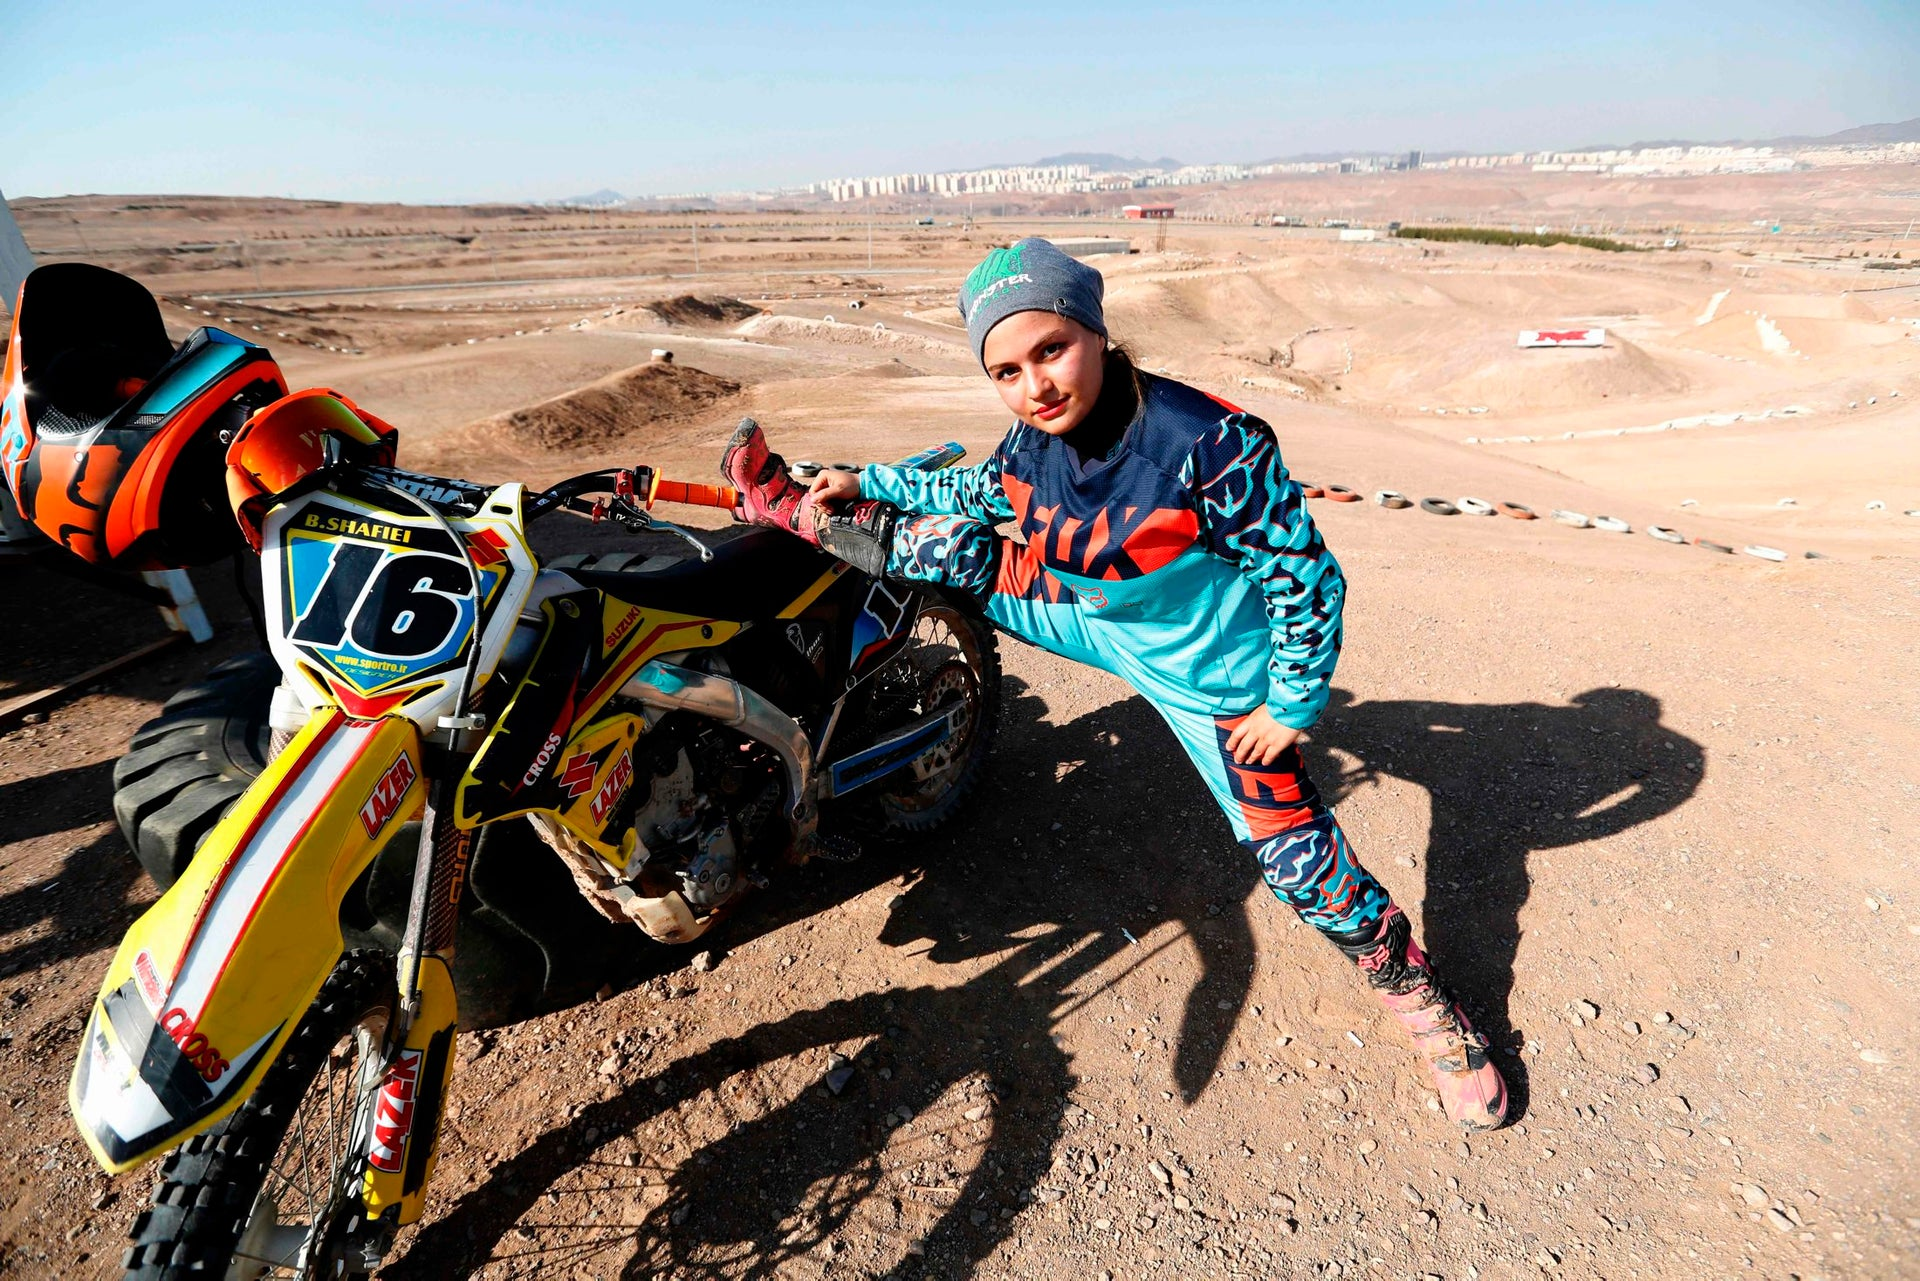 Iranian motorbike champion Behnaz Shafiei poses during a training session in Parand, southwest of Tehran, on February 27, 2017.